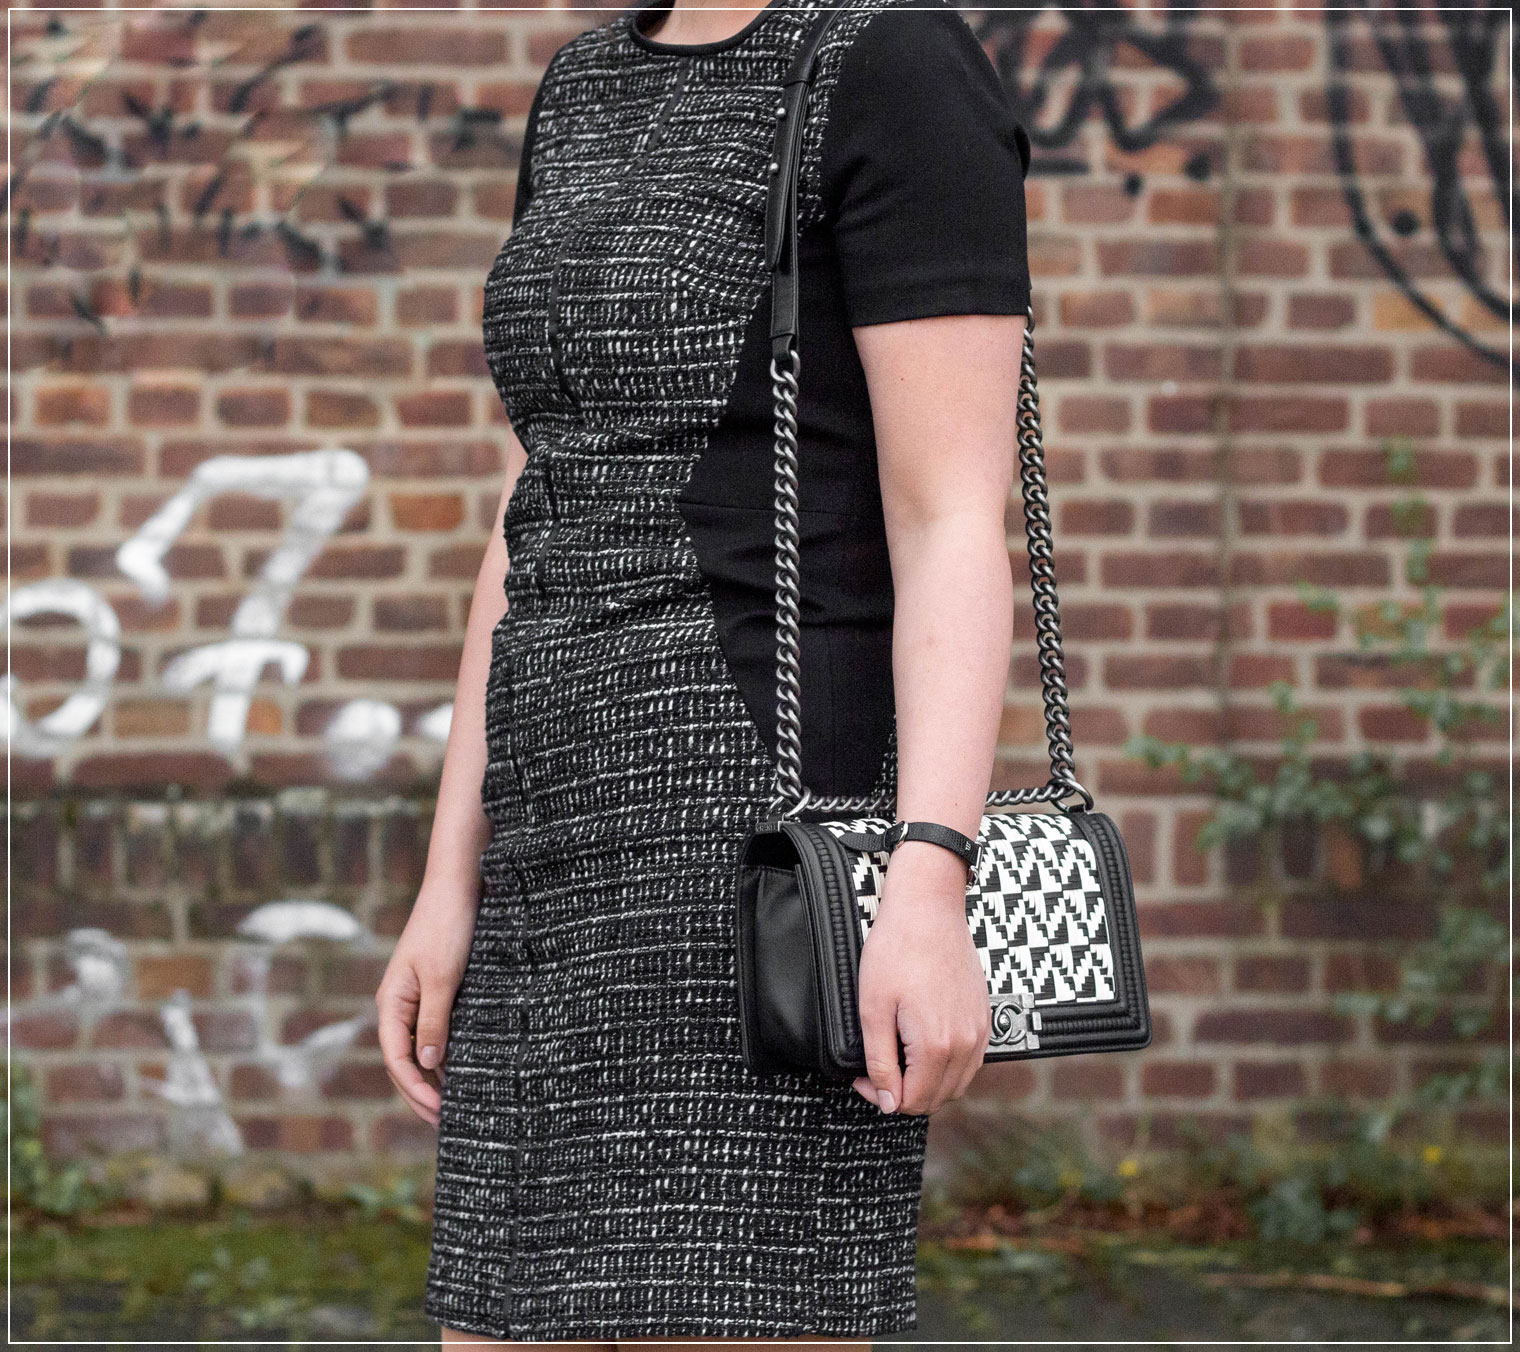 Chanel Boy Bag, Outfit mit Chanel Boy Bag, Tweedkleid kombinieren, Modeklassiker, Spring Style, Outfitinspiration, Modebloggerin, Fashionbloggerin, Modeblog, Ruhrgebiet